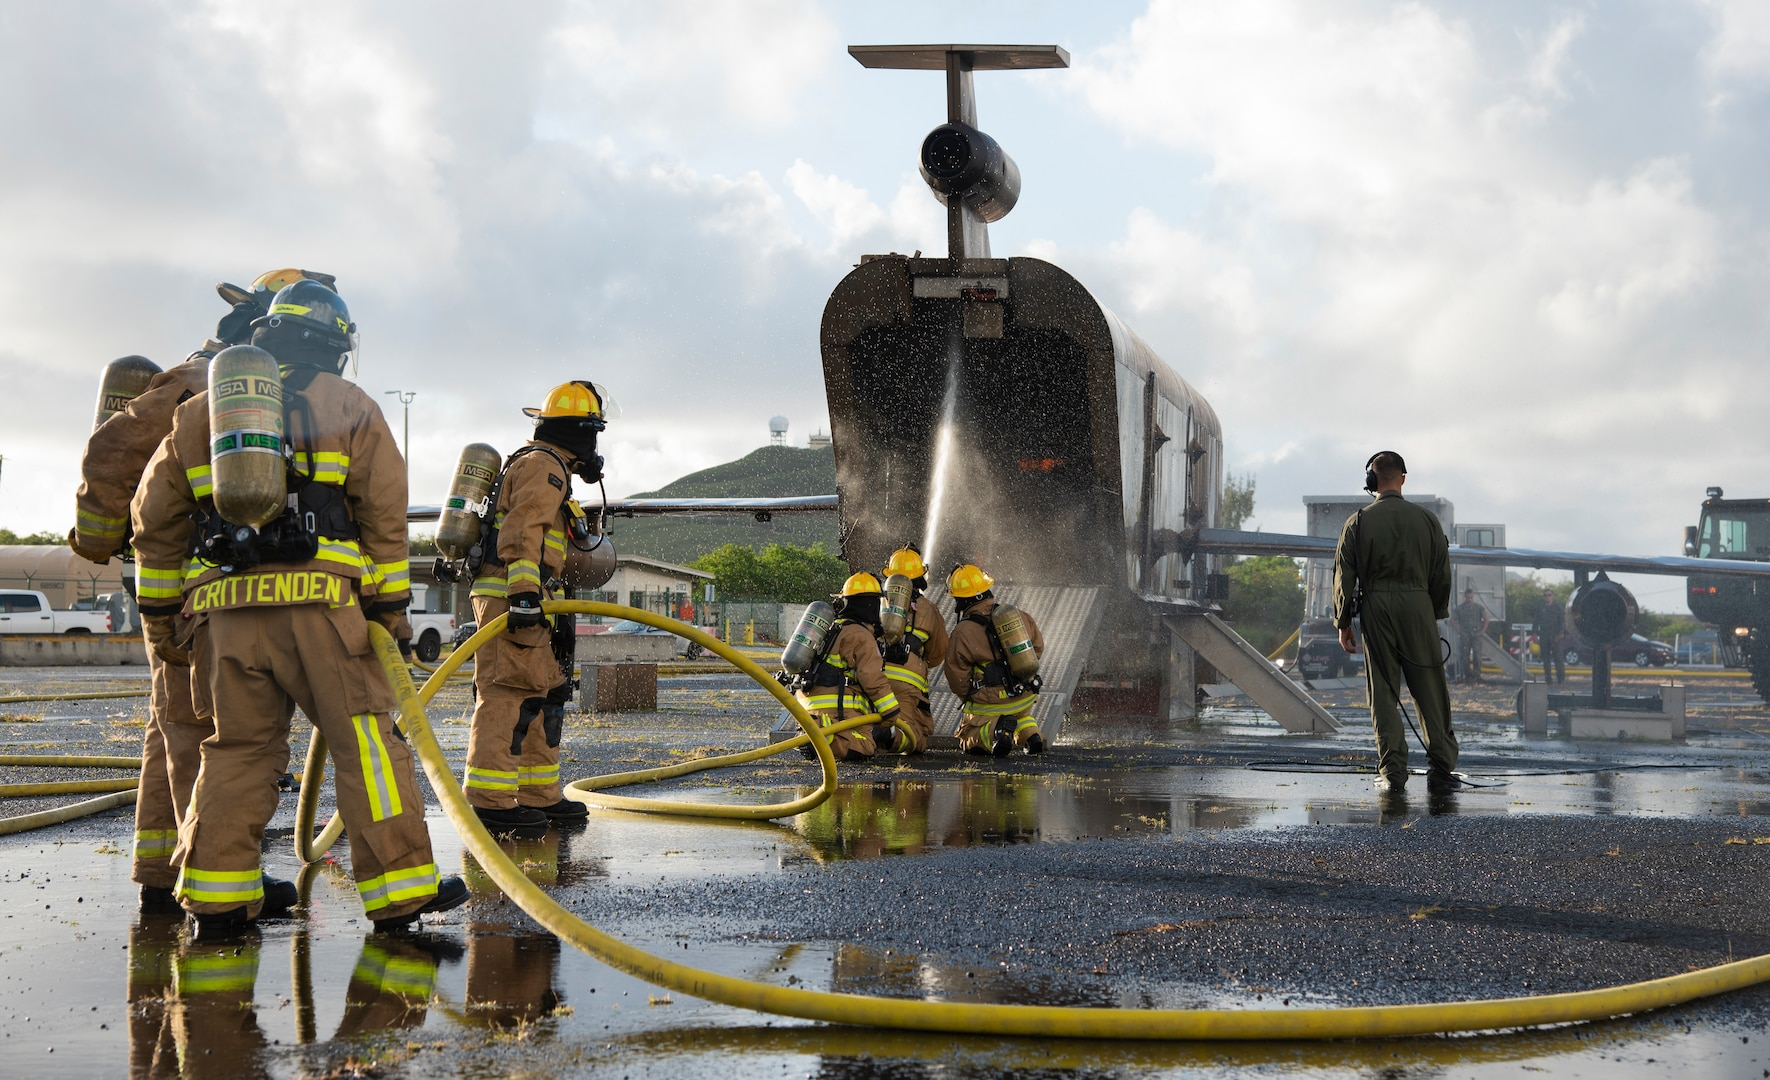 Firefighters from the Oregon Air National Guard's 142nd Wing conduct a live-fire exercise with Marine Corps firefighters at Marine Corps Base, Hawaii, May 14, 2021. This burn is part of a larger scale joint exercise that includes aircraft familiarization, egress training, and co-training and mentoring less experienced firefighters.